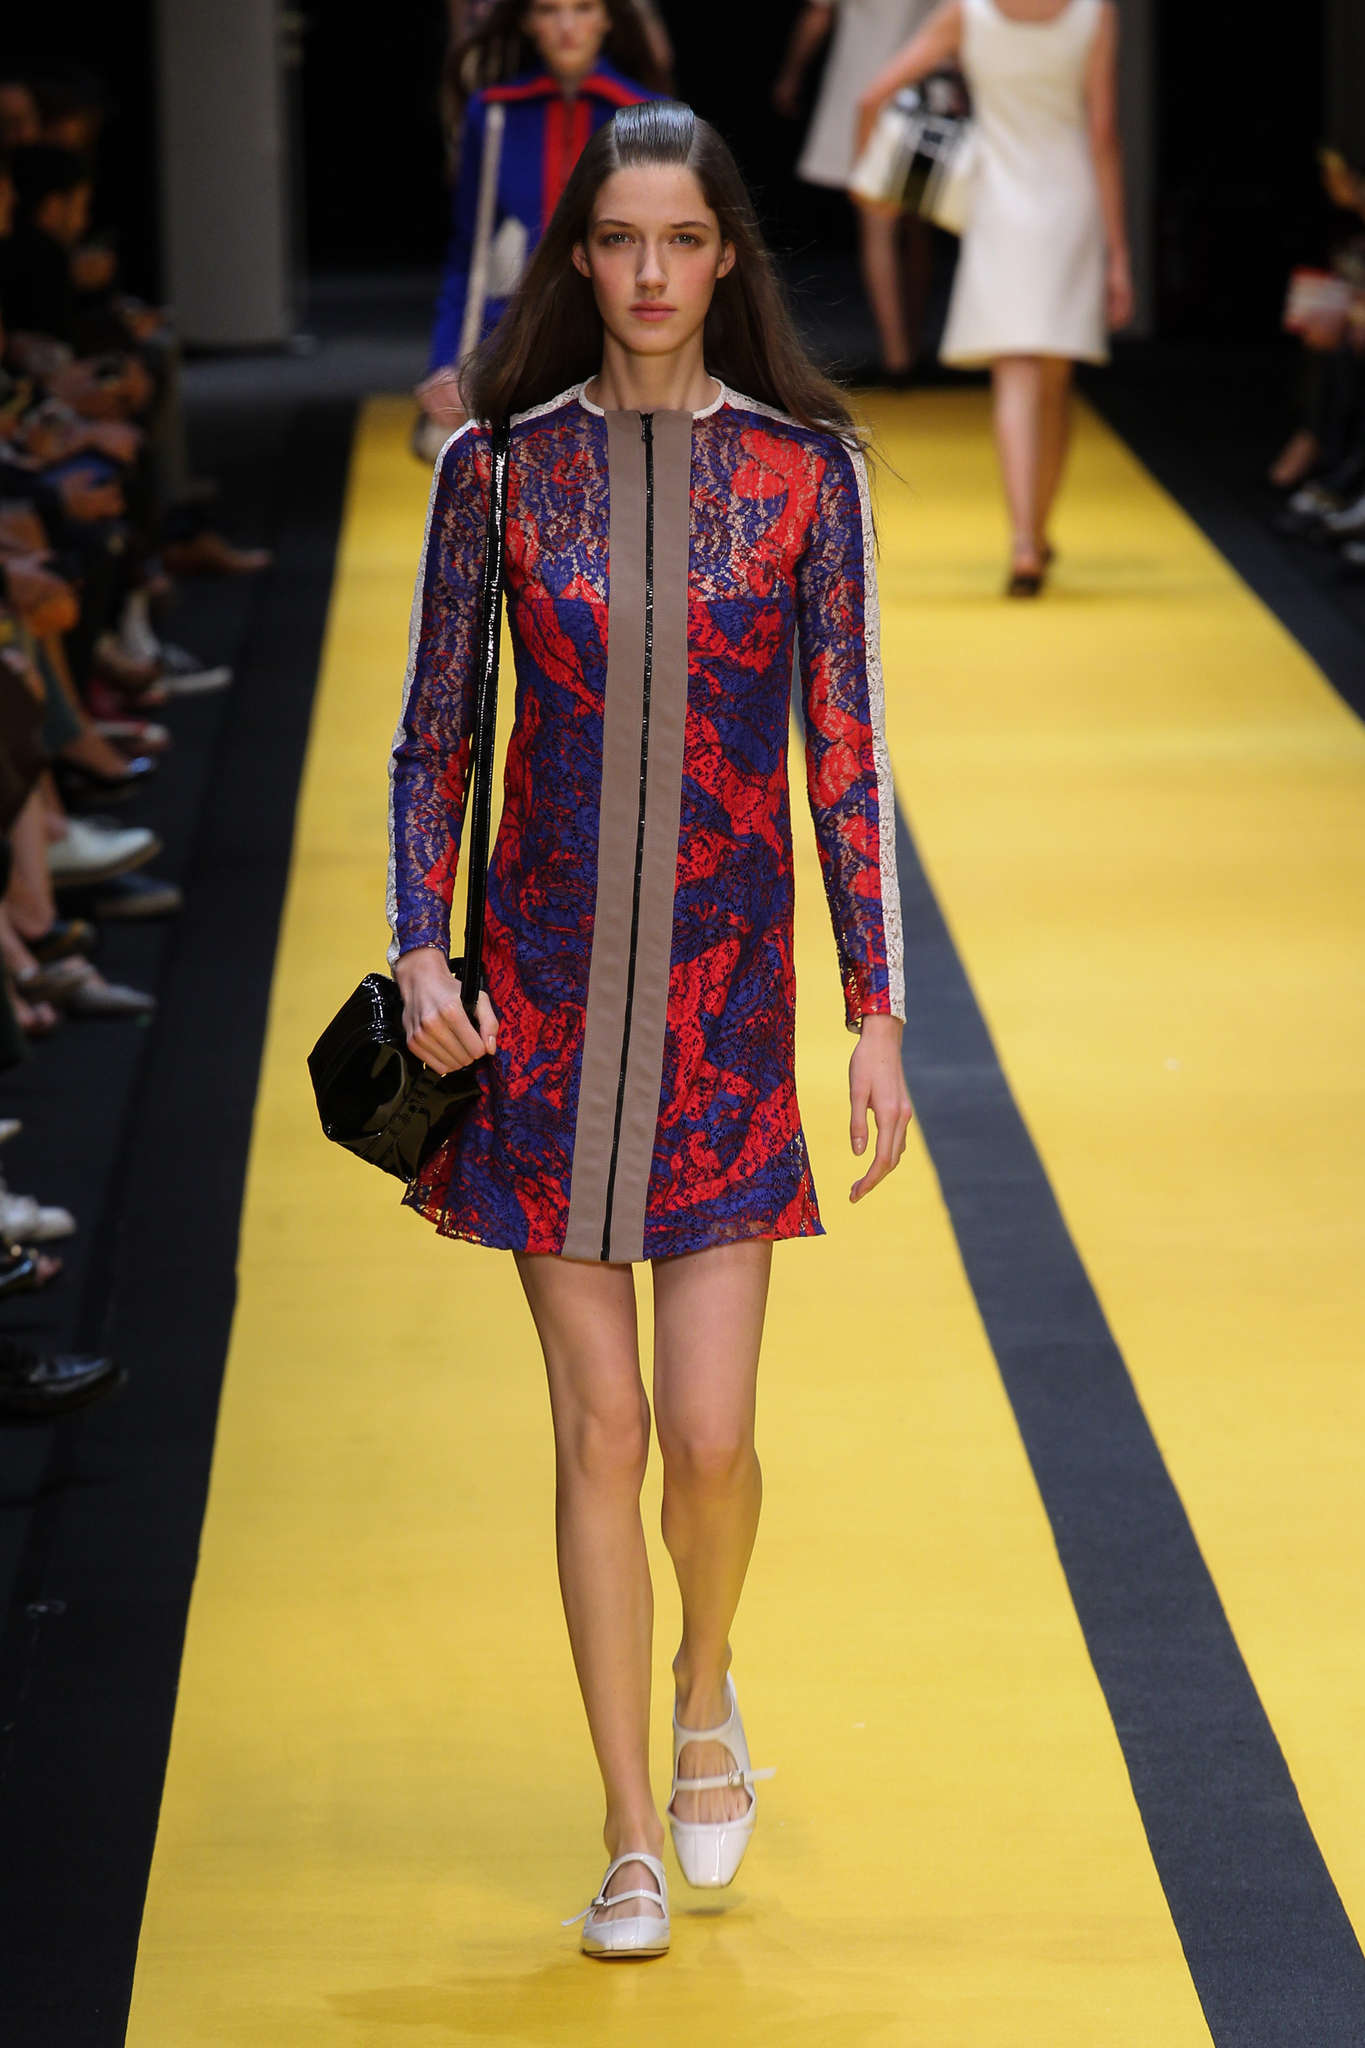 Carven - Collection Printemps/Eté 15 on Trends Periodical